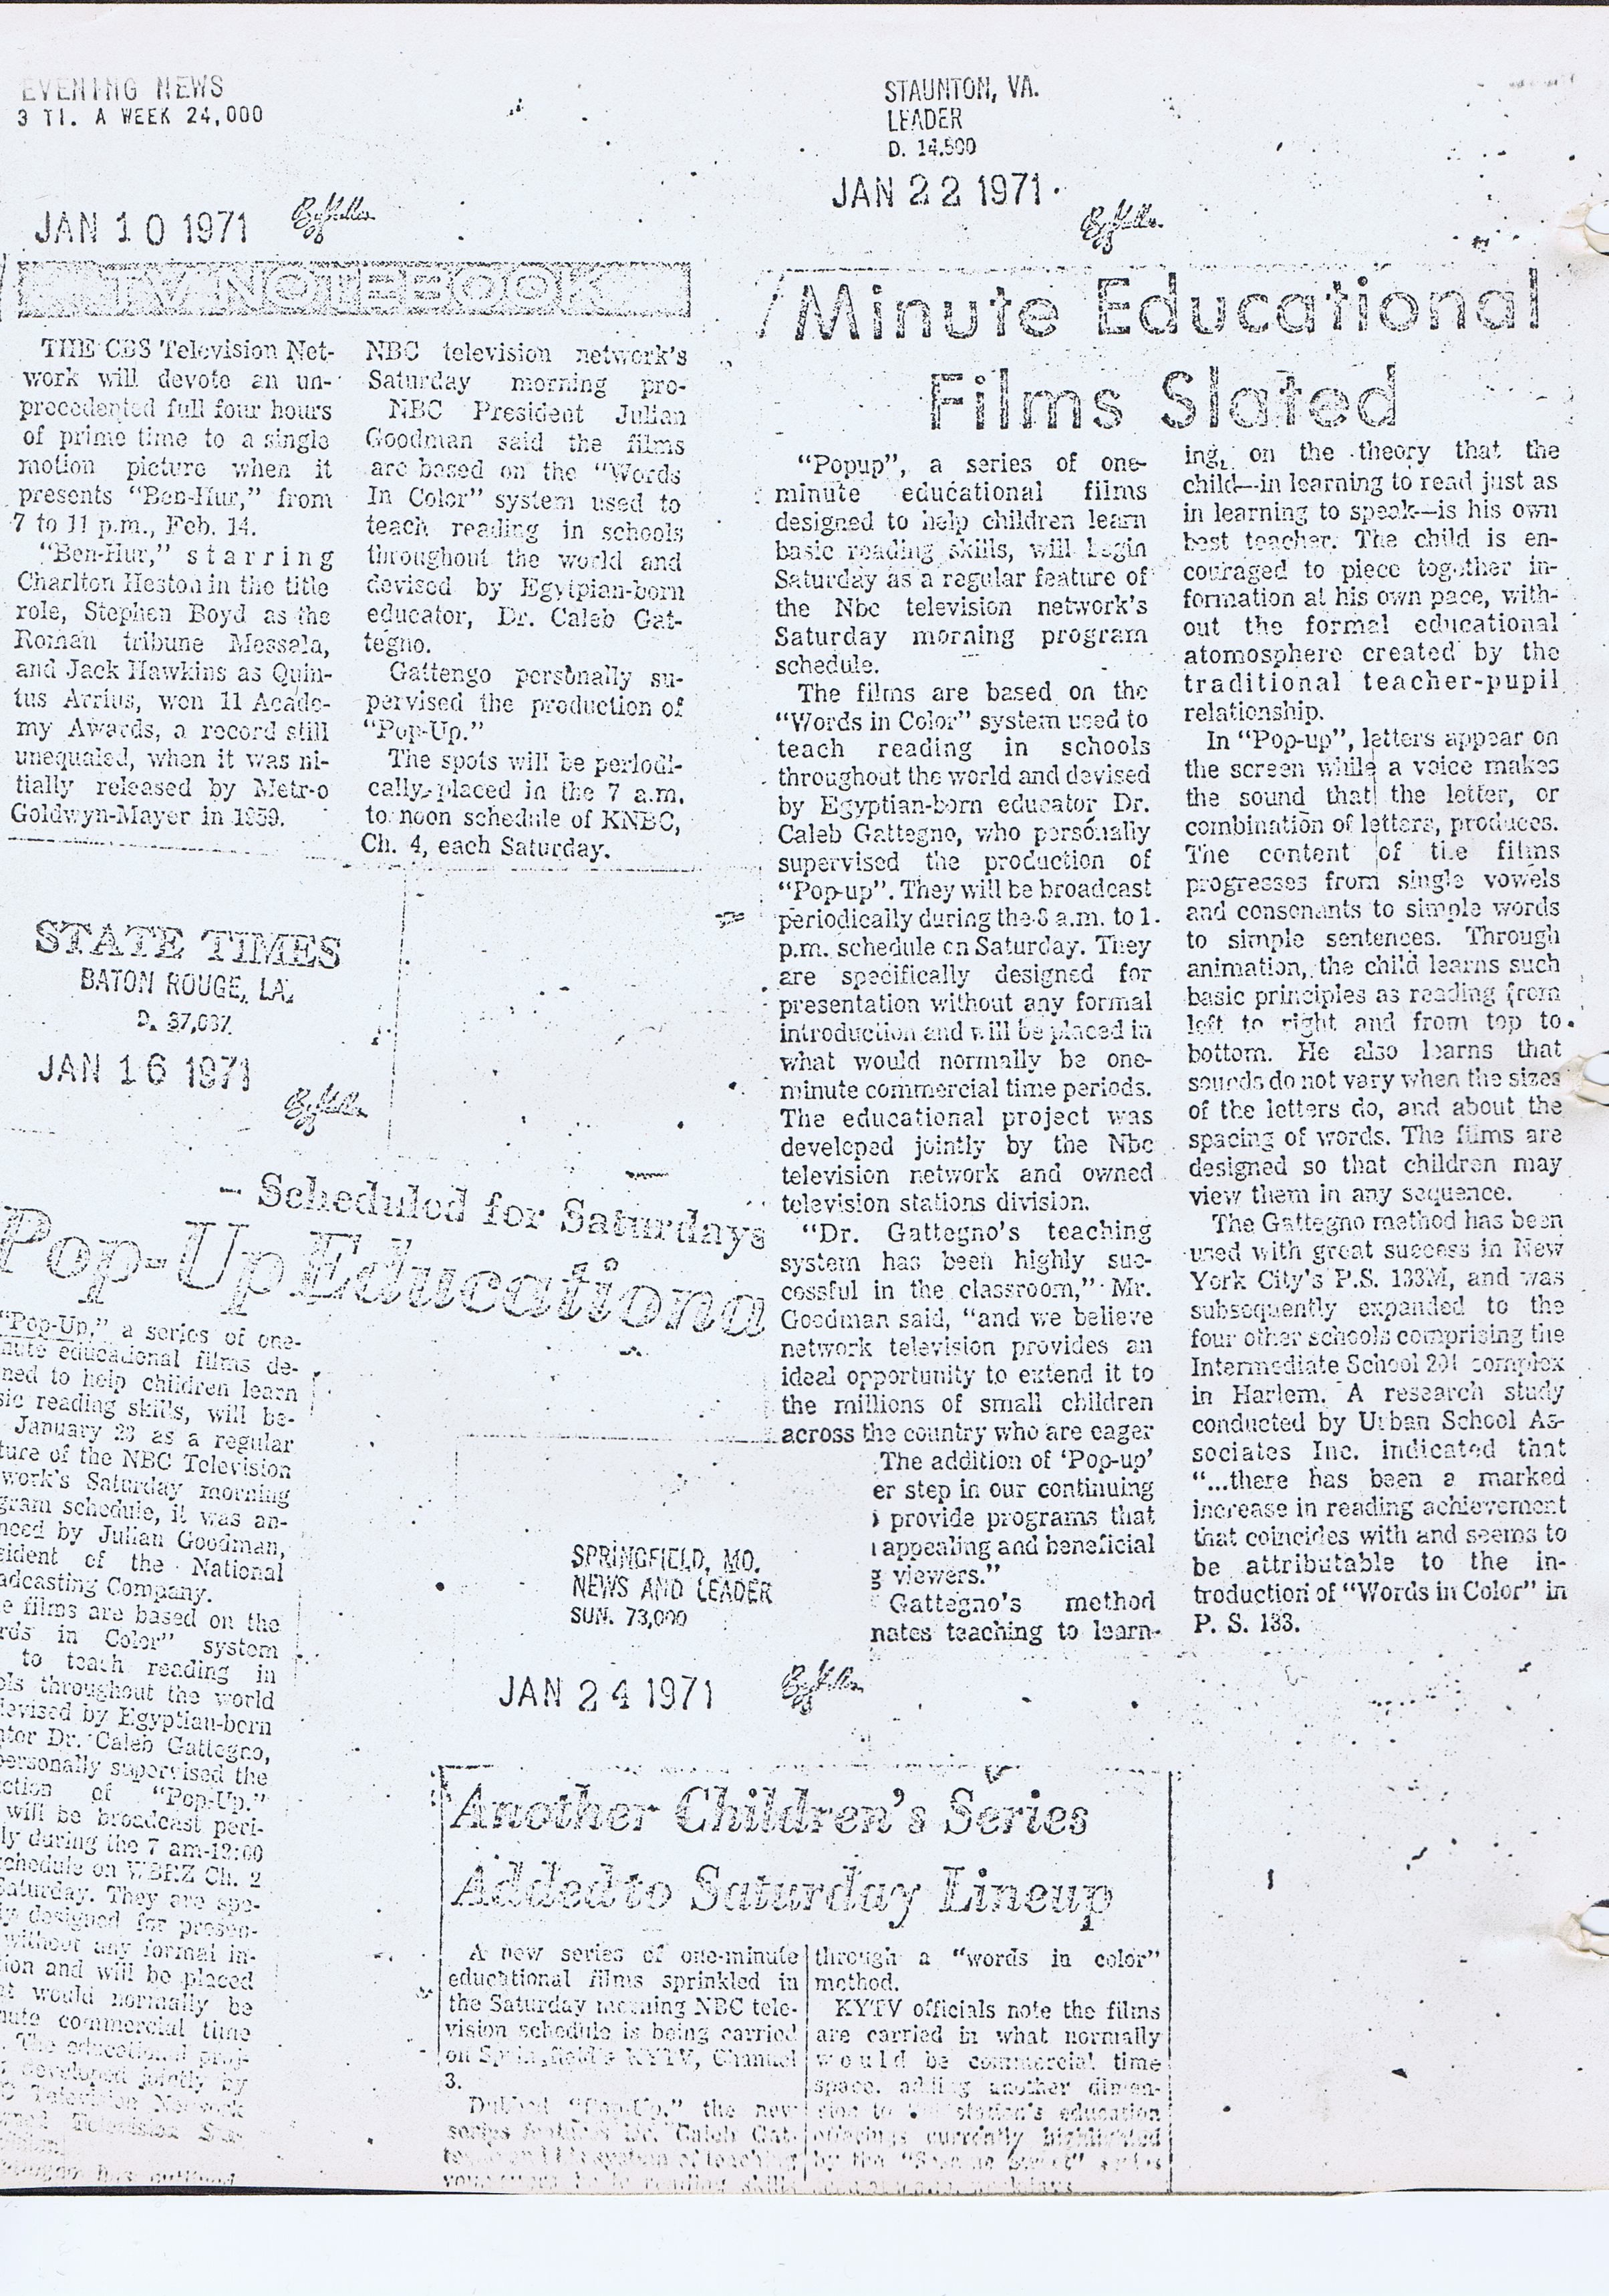 Evening News, State Times, Staunton Leader, News and Leader, Jan 1971.jpg